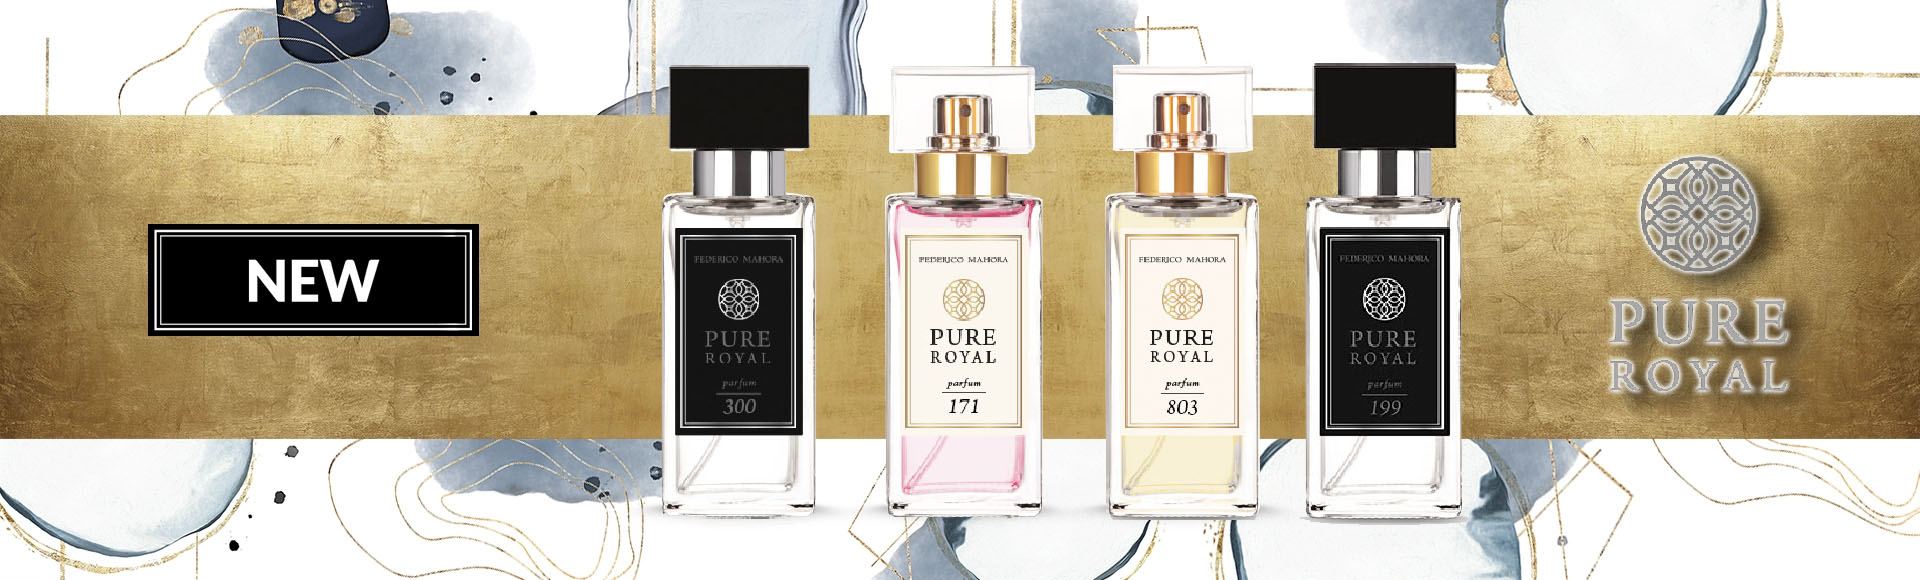 Coming soon Pure Royal